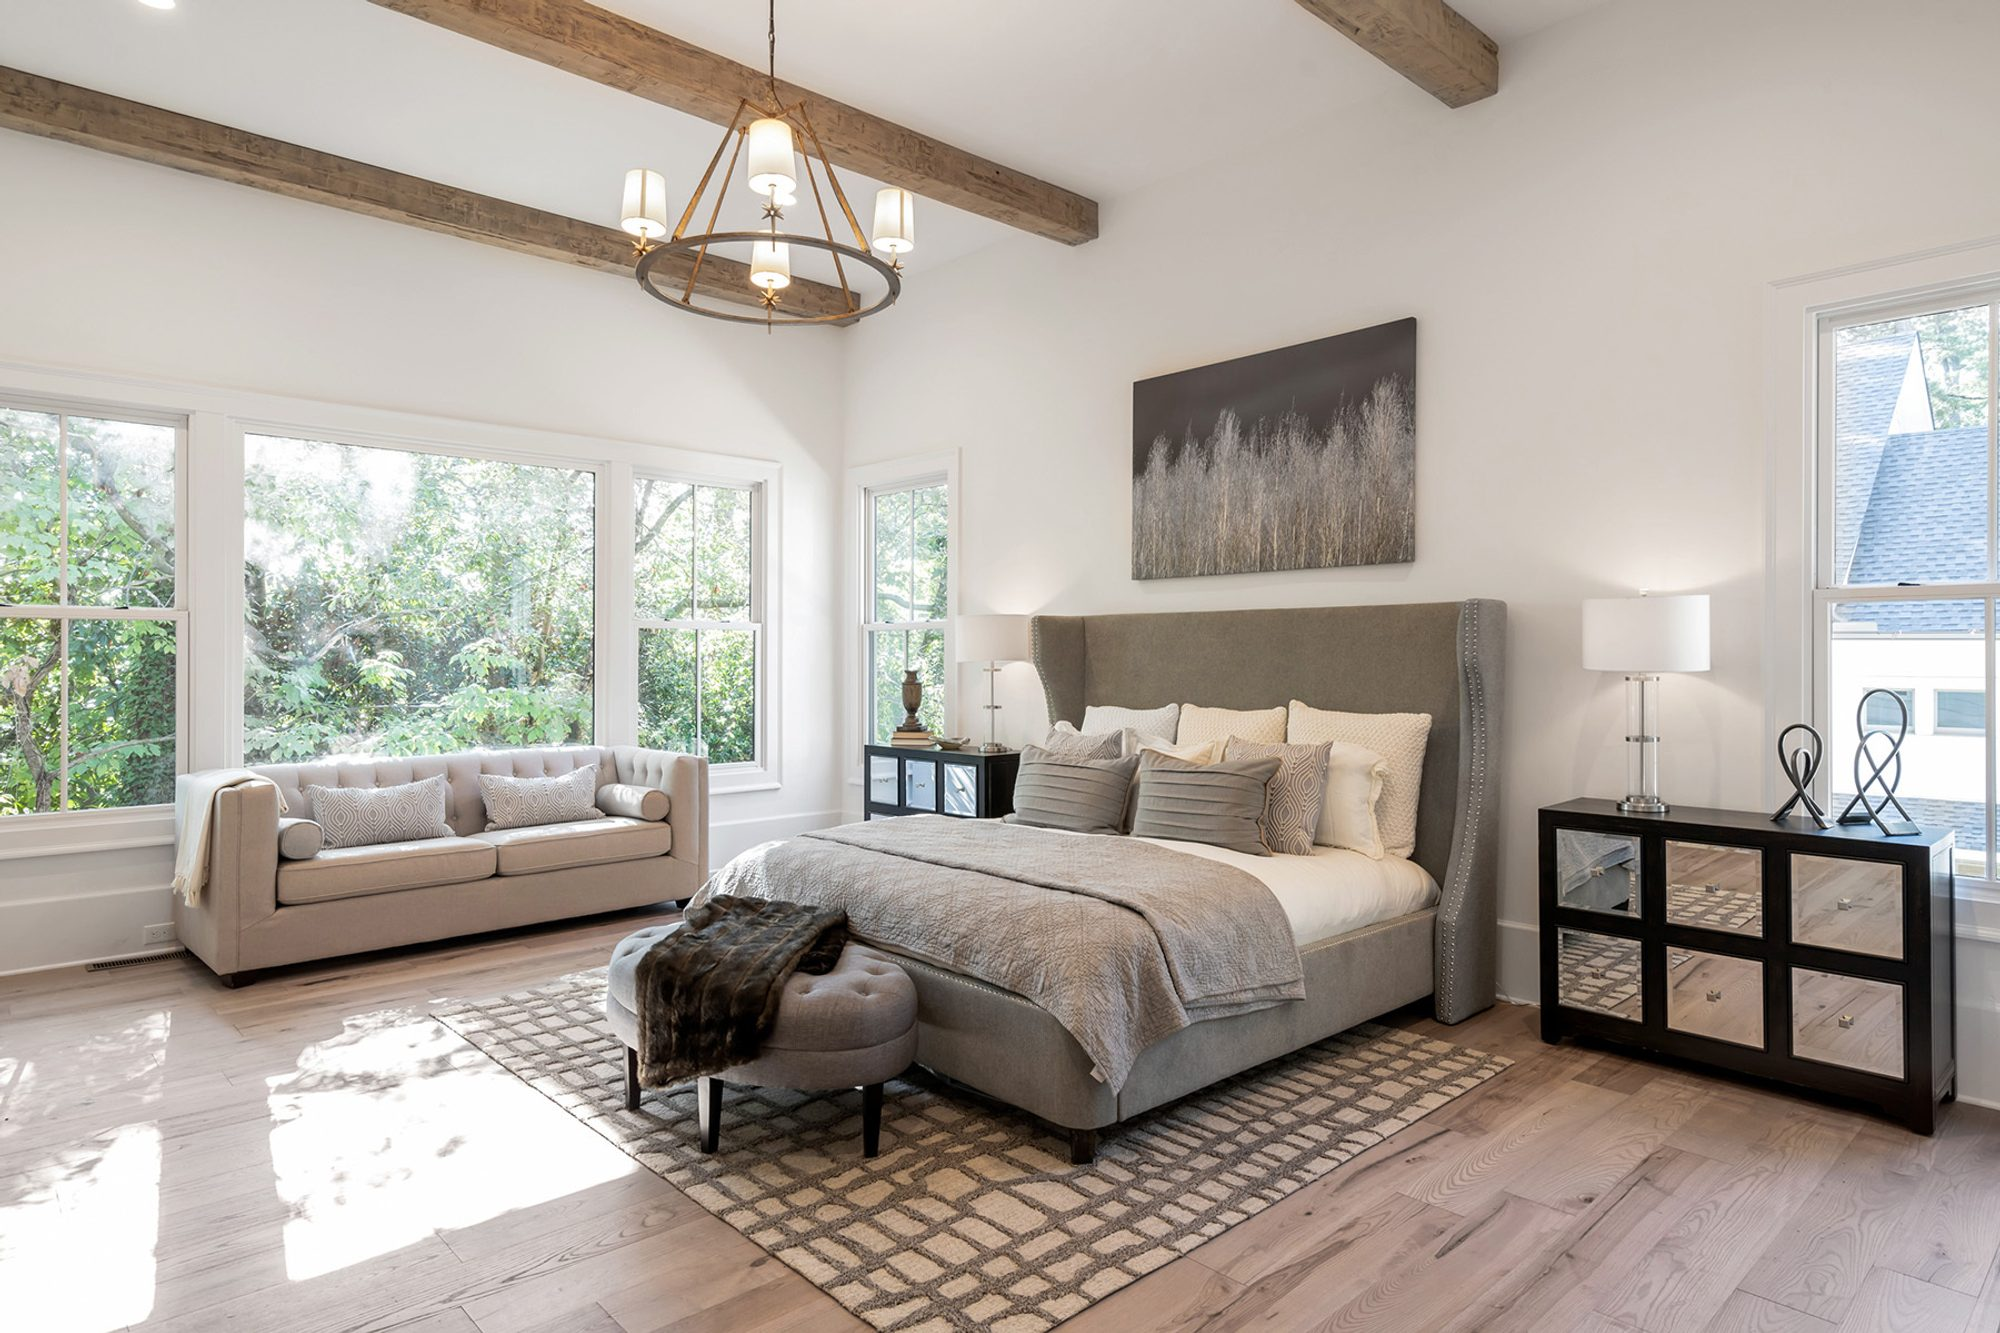 gray and cream master bedroom plush gray headboard area rug dropped wood beams hardwood floors